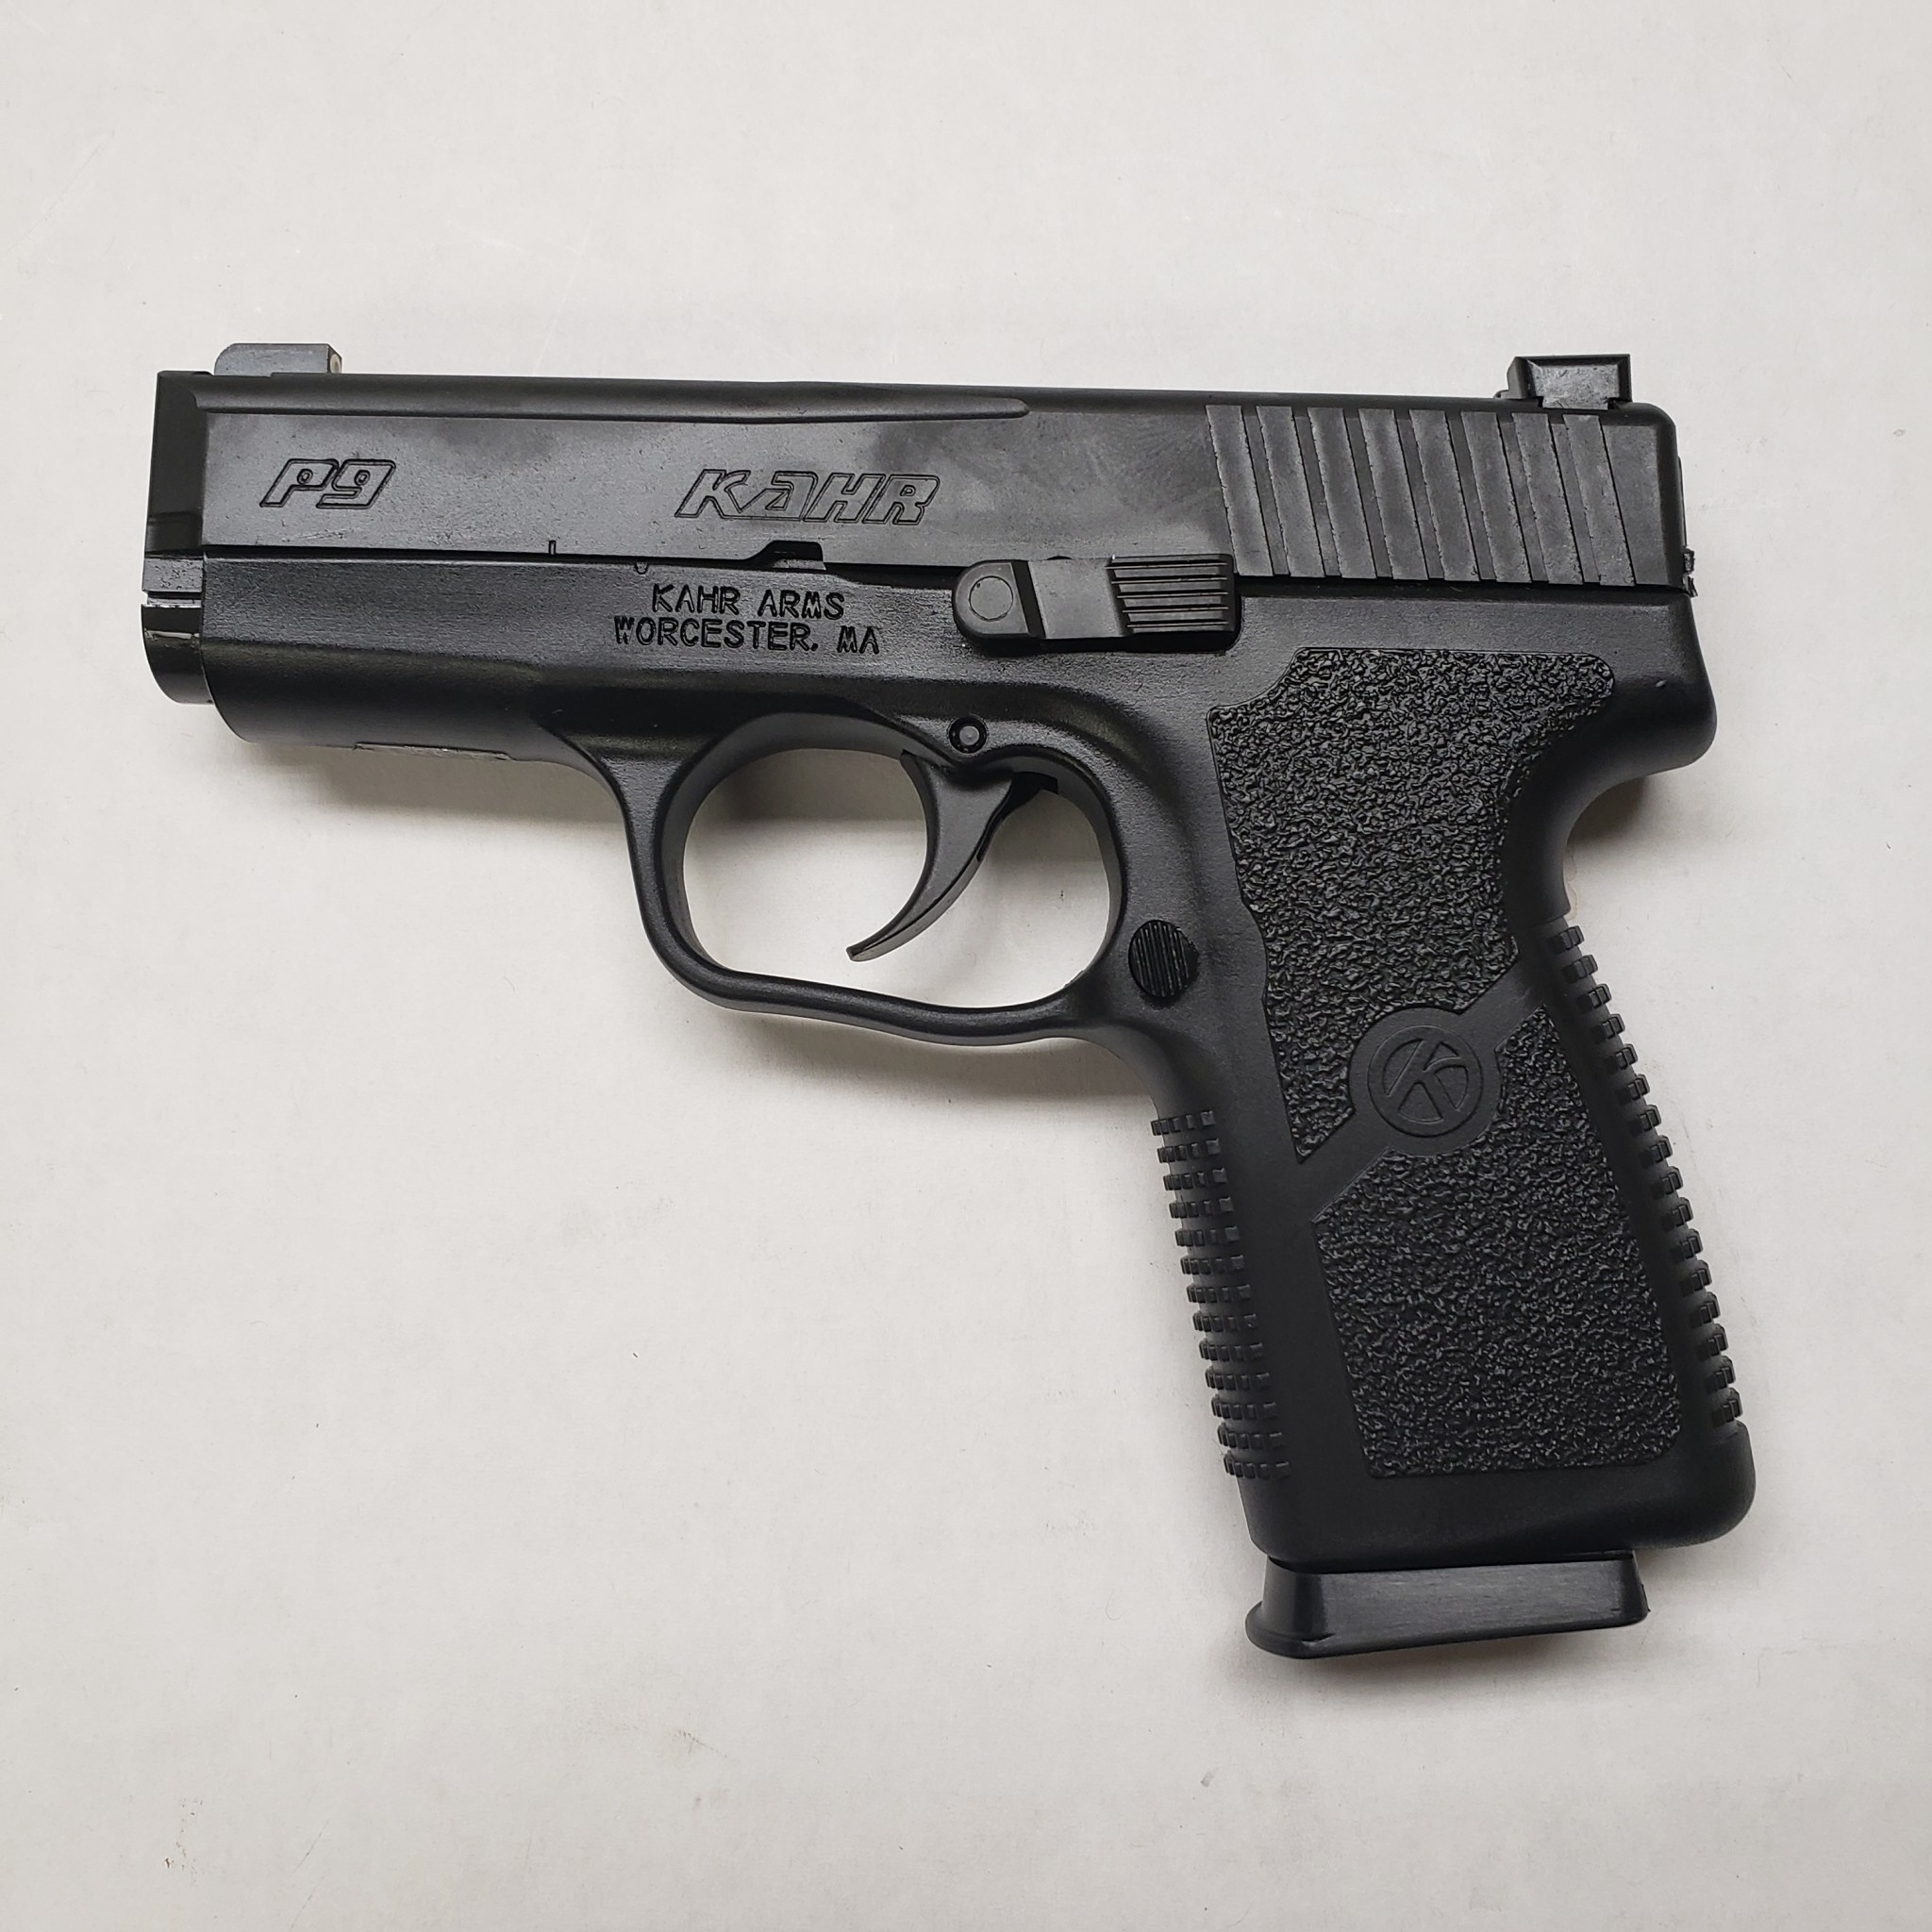 KAHR ARMS P9 Pistol 9mm